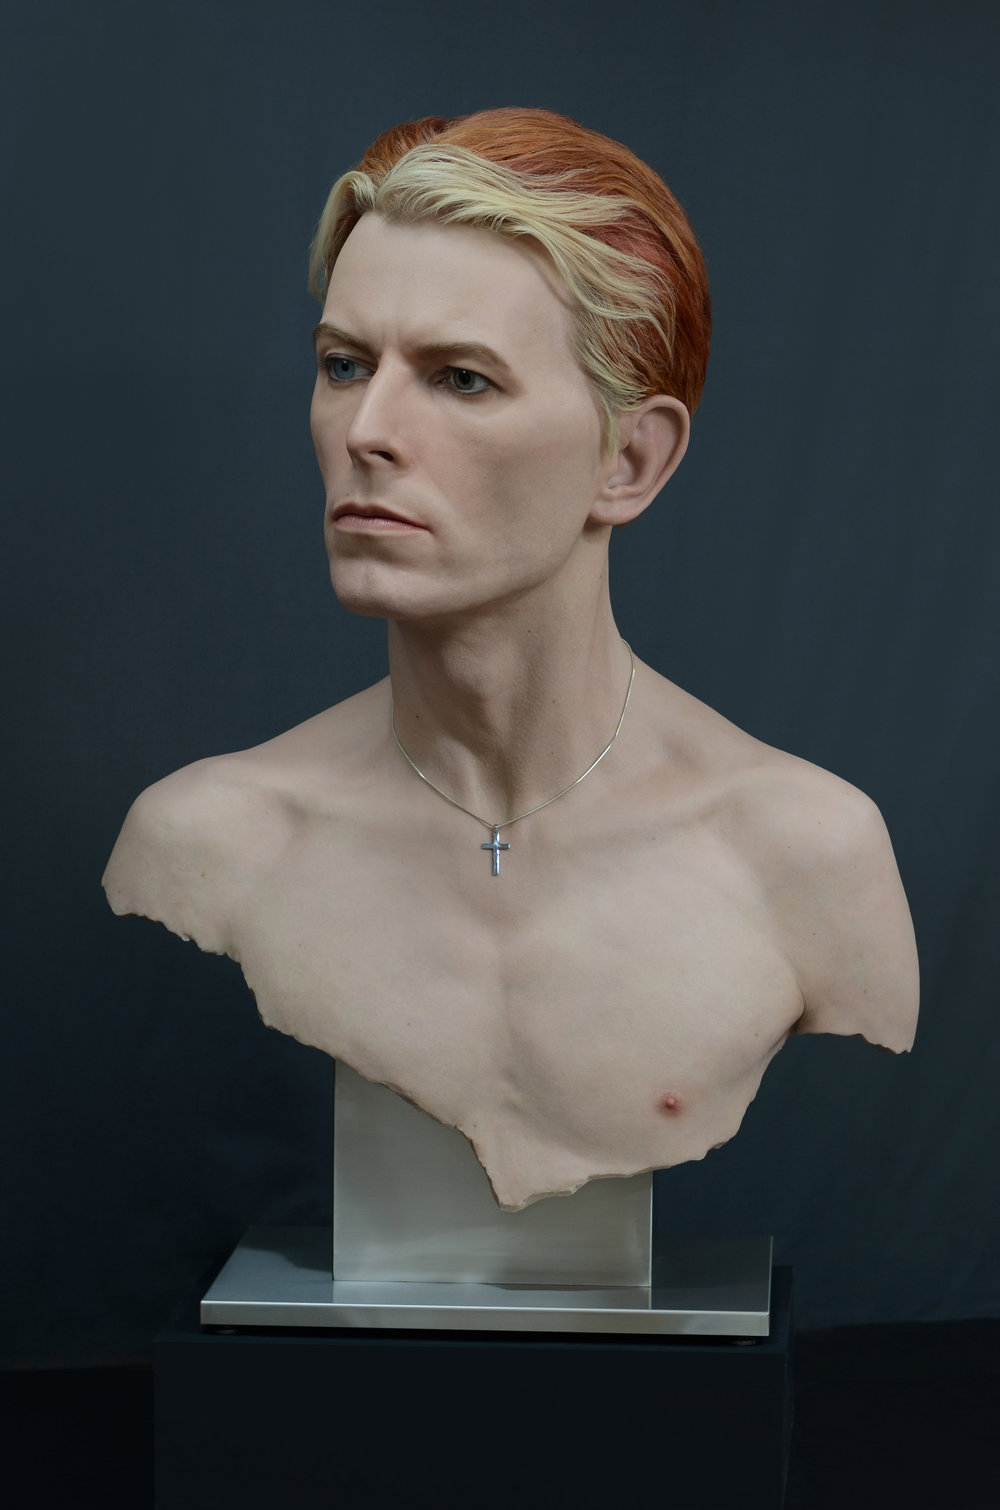 David Bowie (3/4 view)